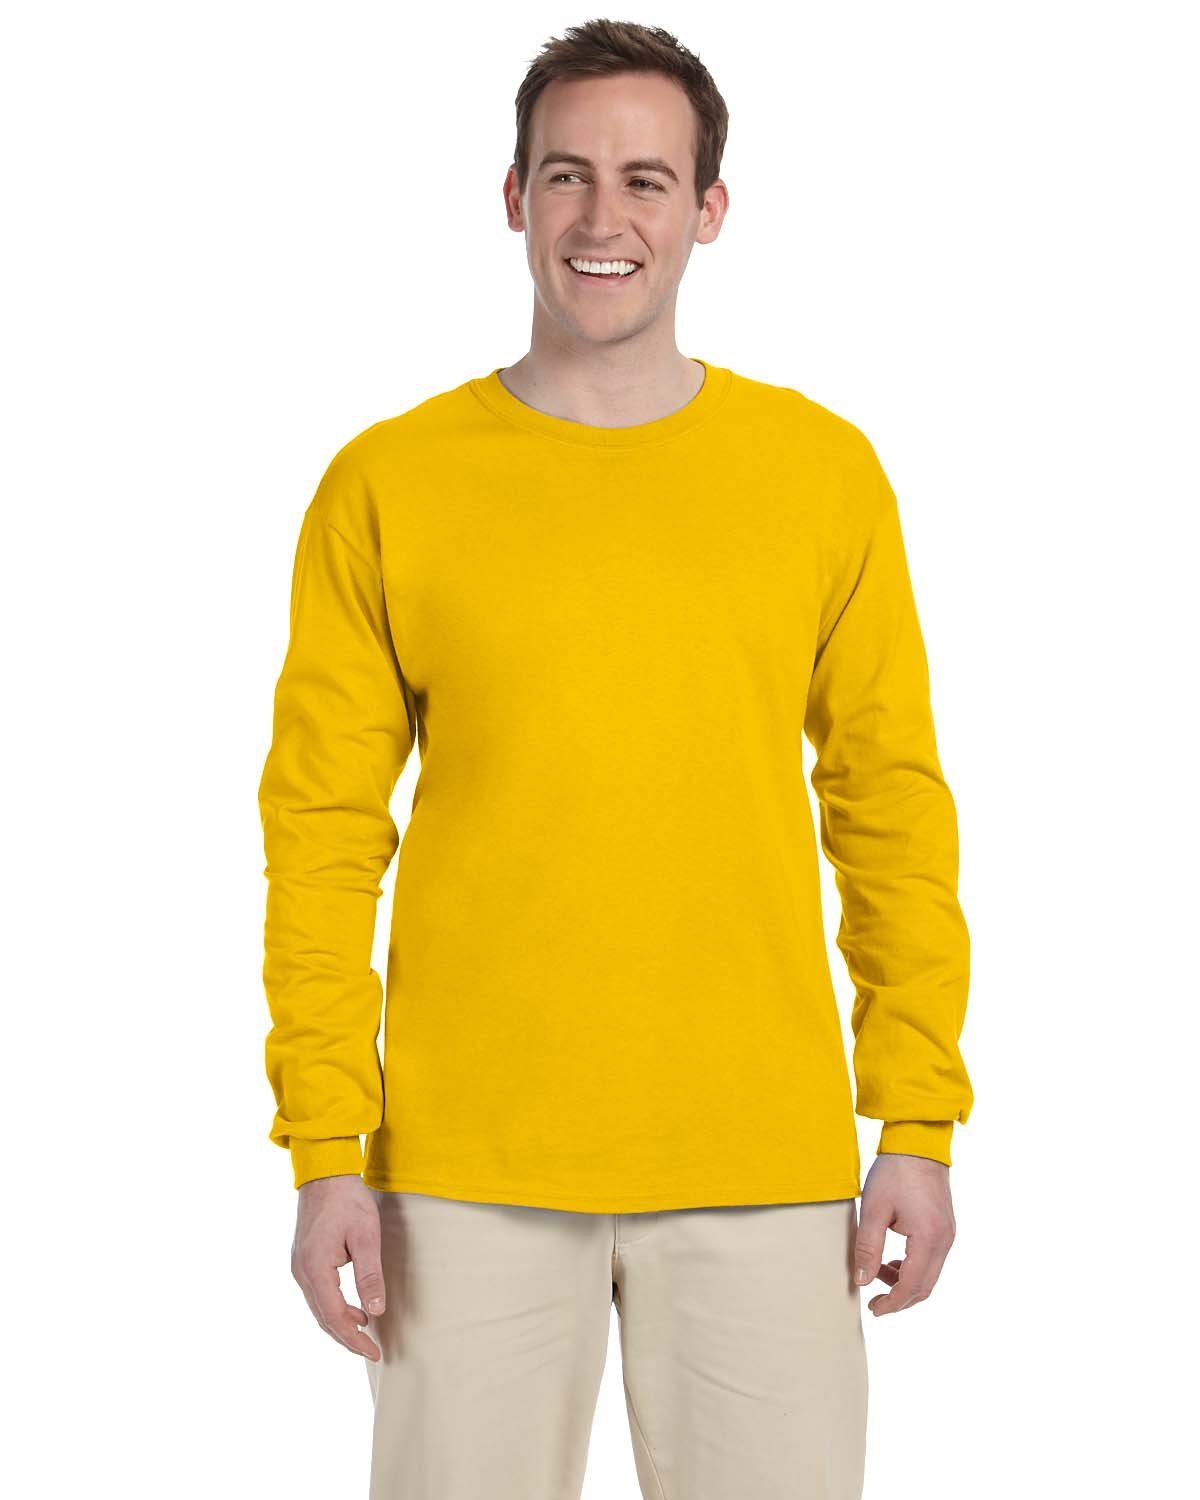 Gildan 2400 - Ultra Cotton™ Long Sleeve T-Shirt | Wordans USA